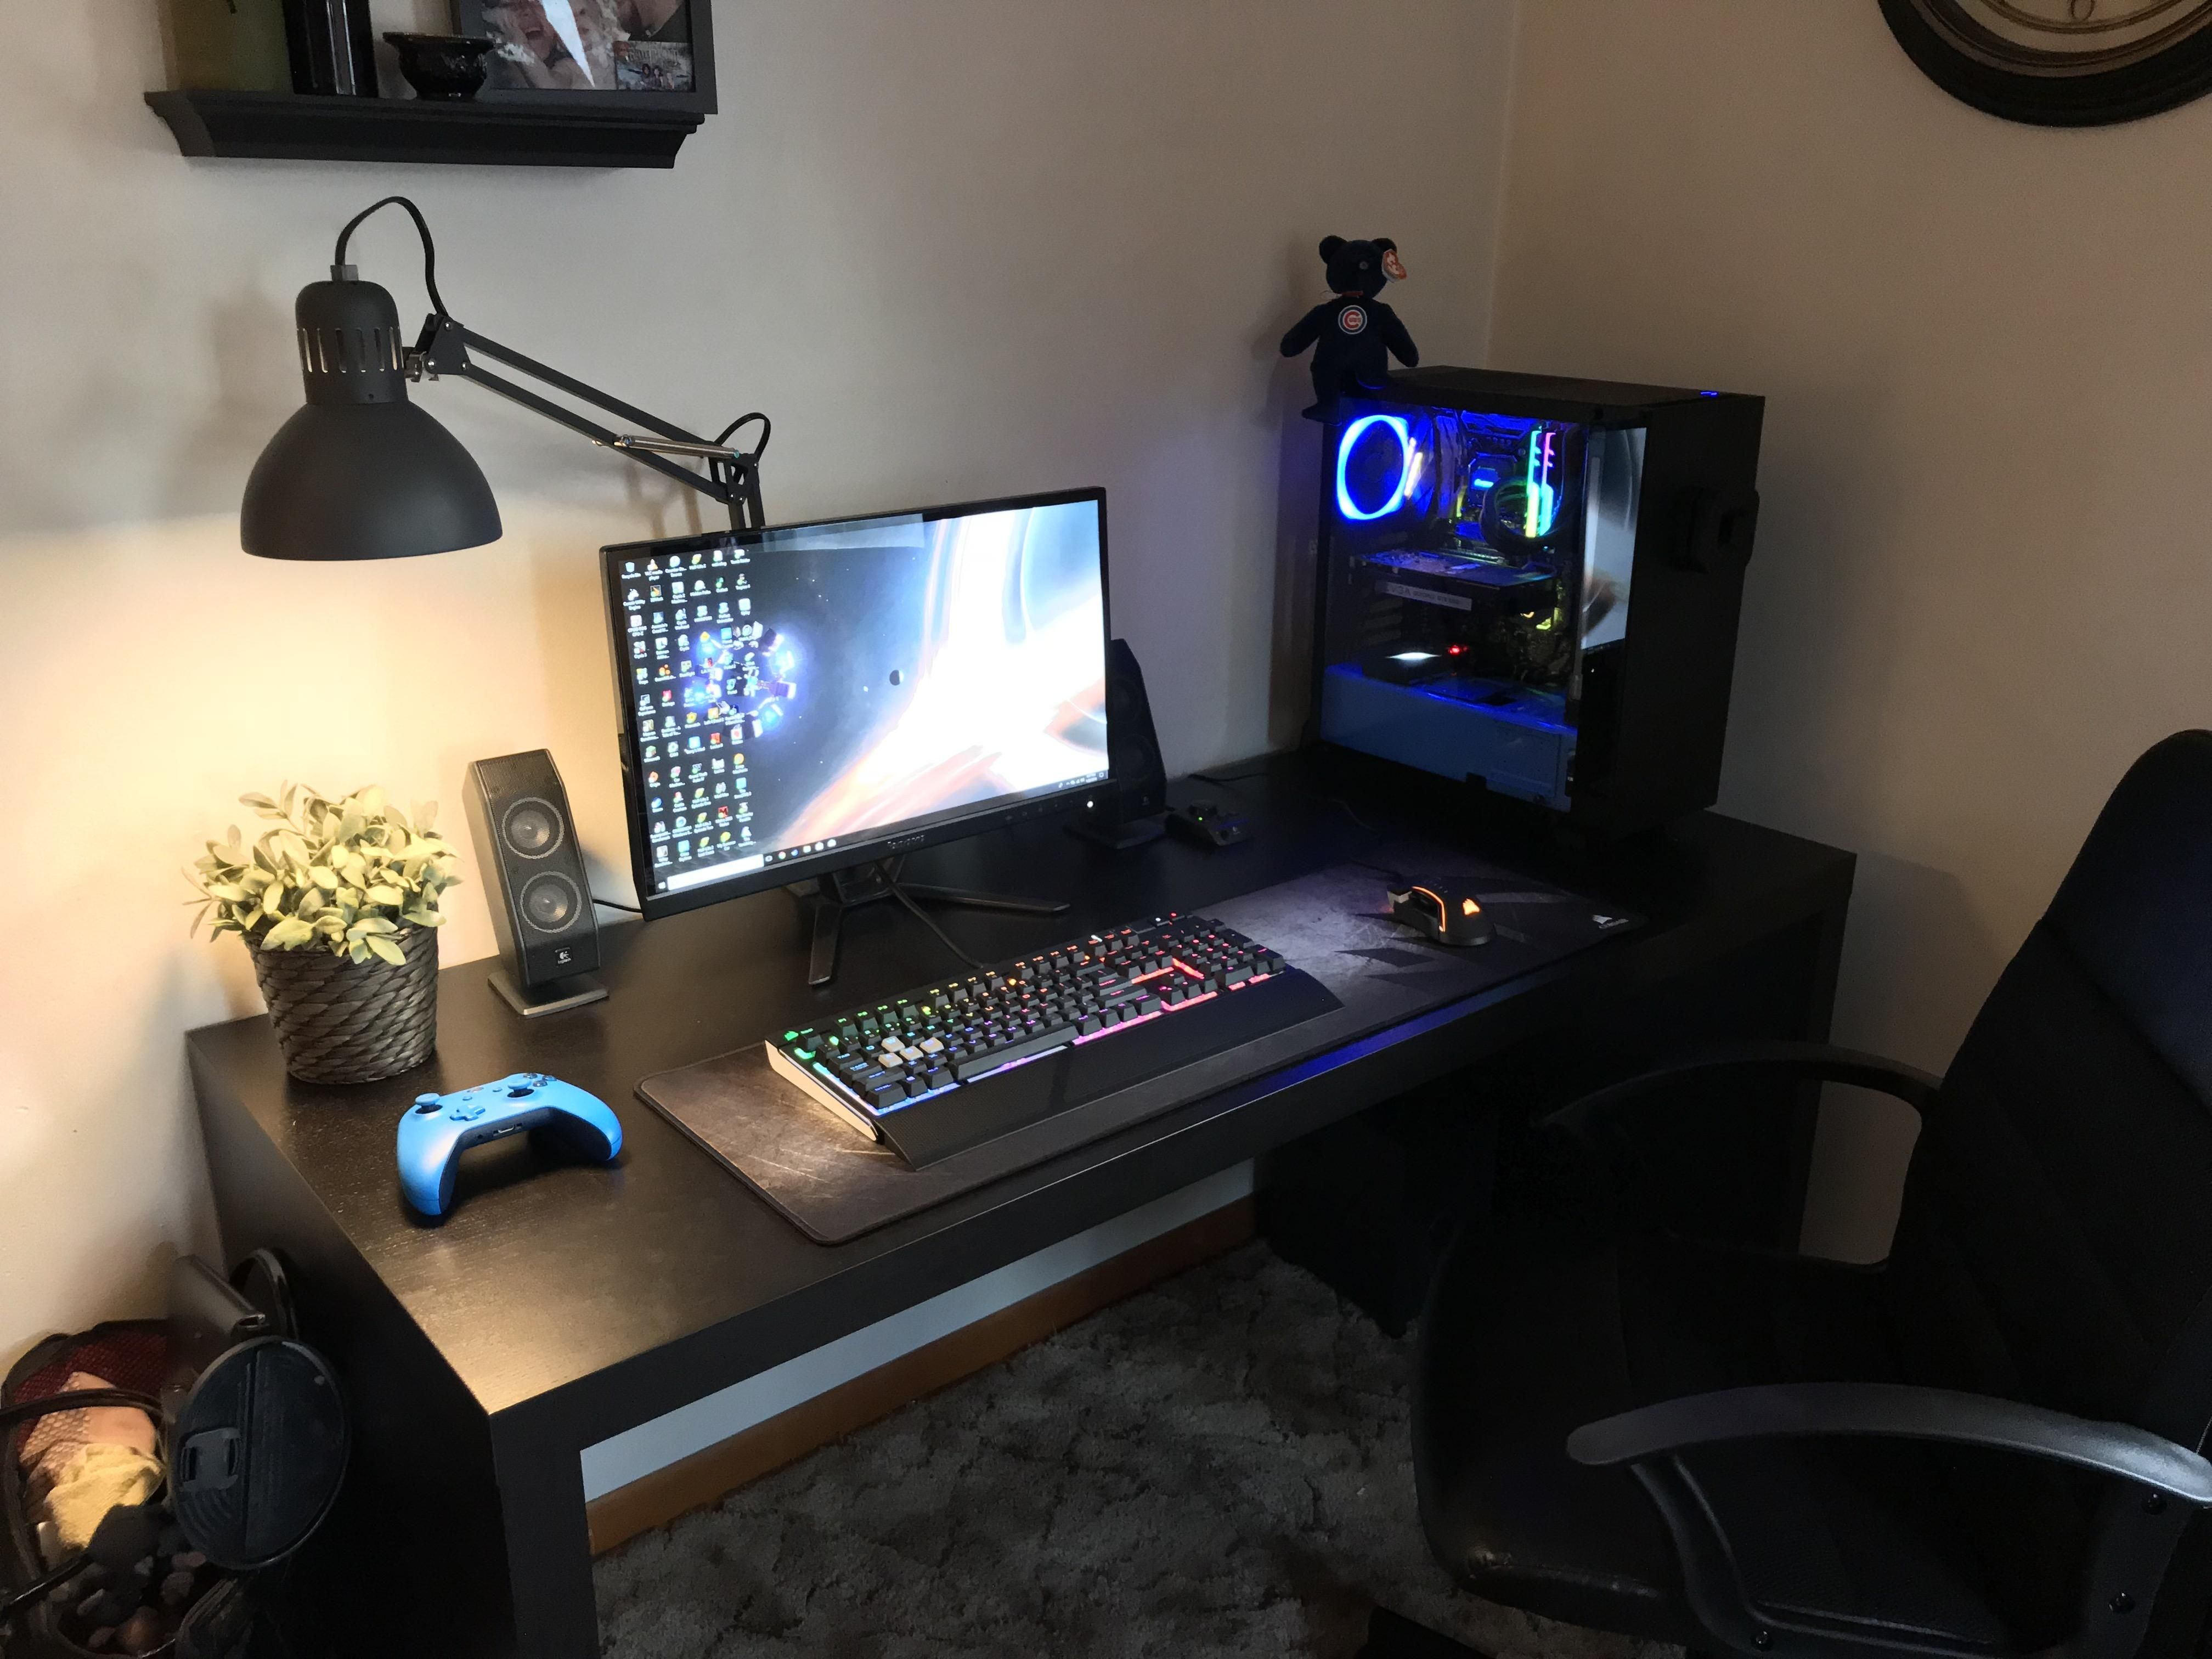 Microcenter and Ikea are my weakness. Desk setup, Pc